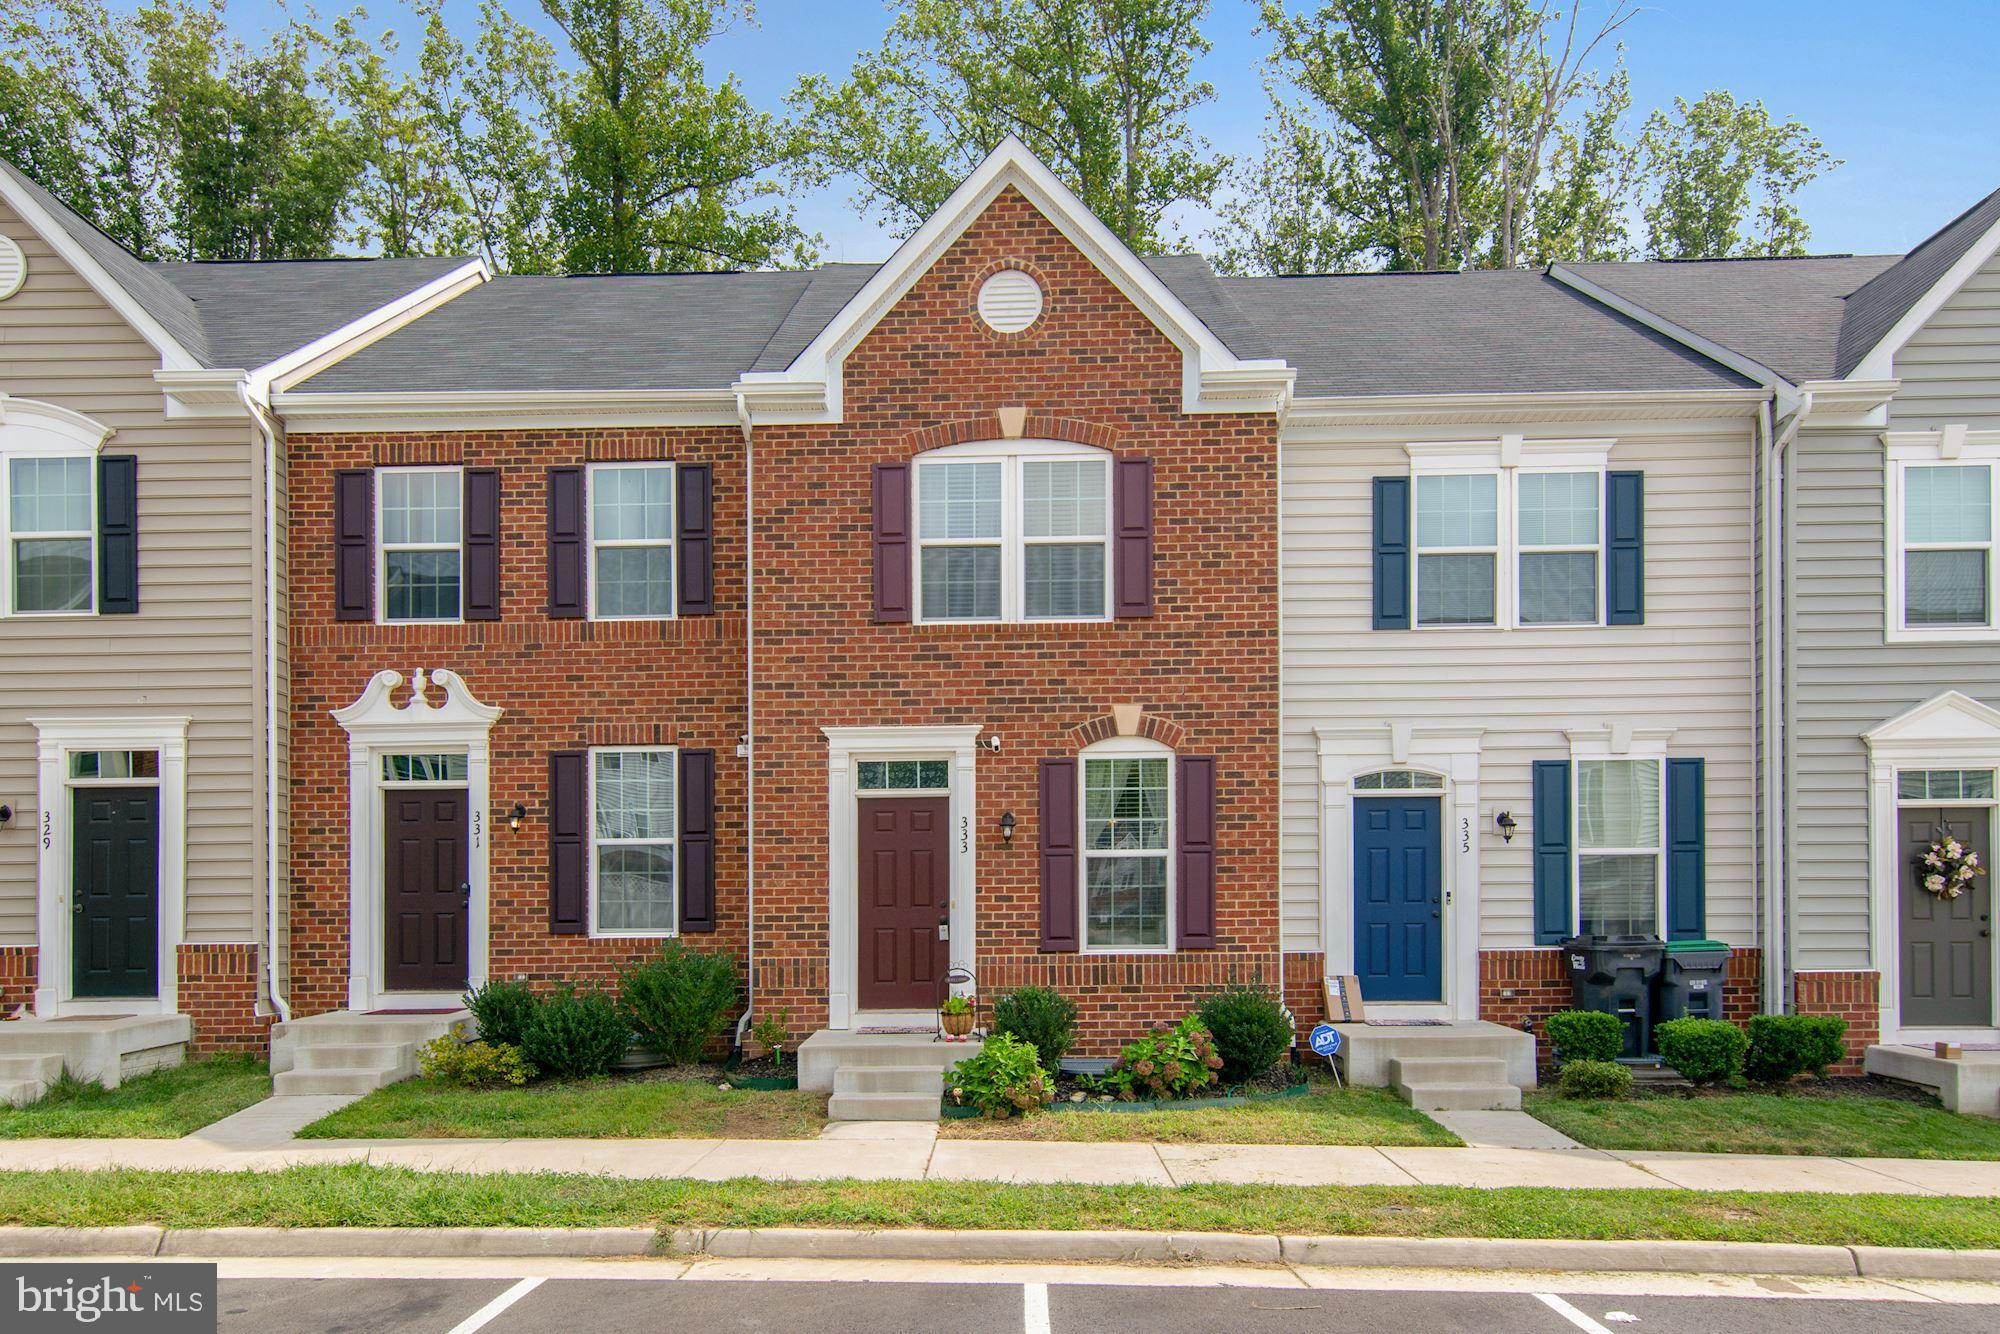 Beautiful townhome just built in 2018 located in amenity-rich Rappahannock Landing. This elegantly d